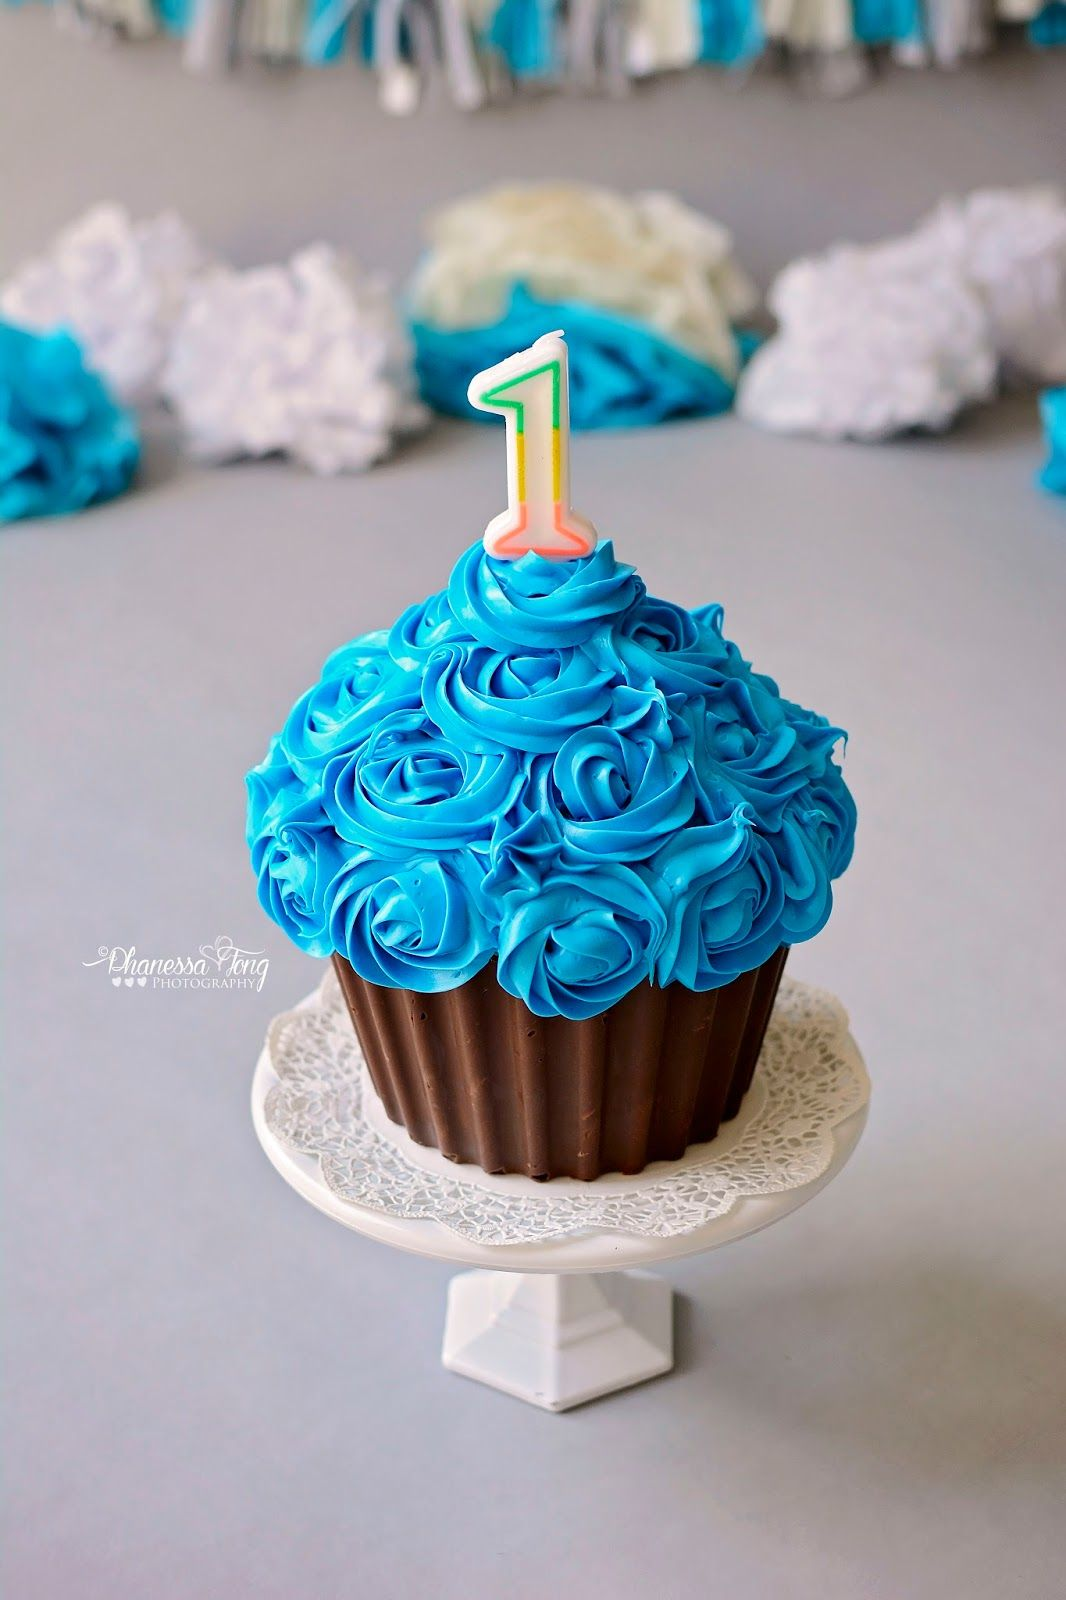 Phanessas Crafts Diy Giant Cupcake Smash Cake Cakes Pinterest